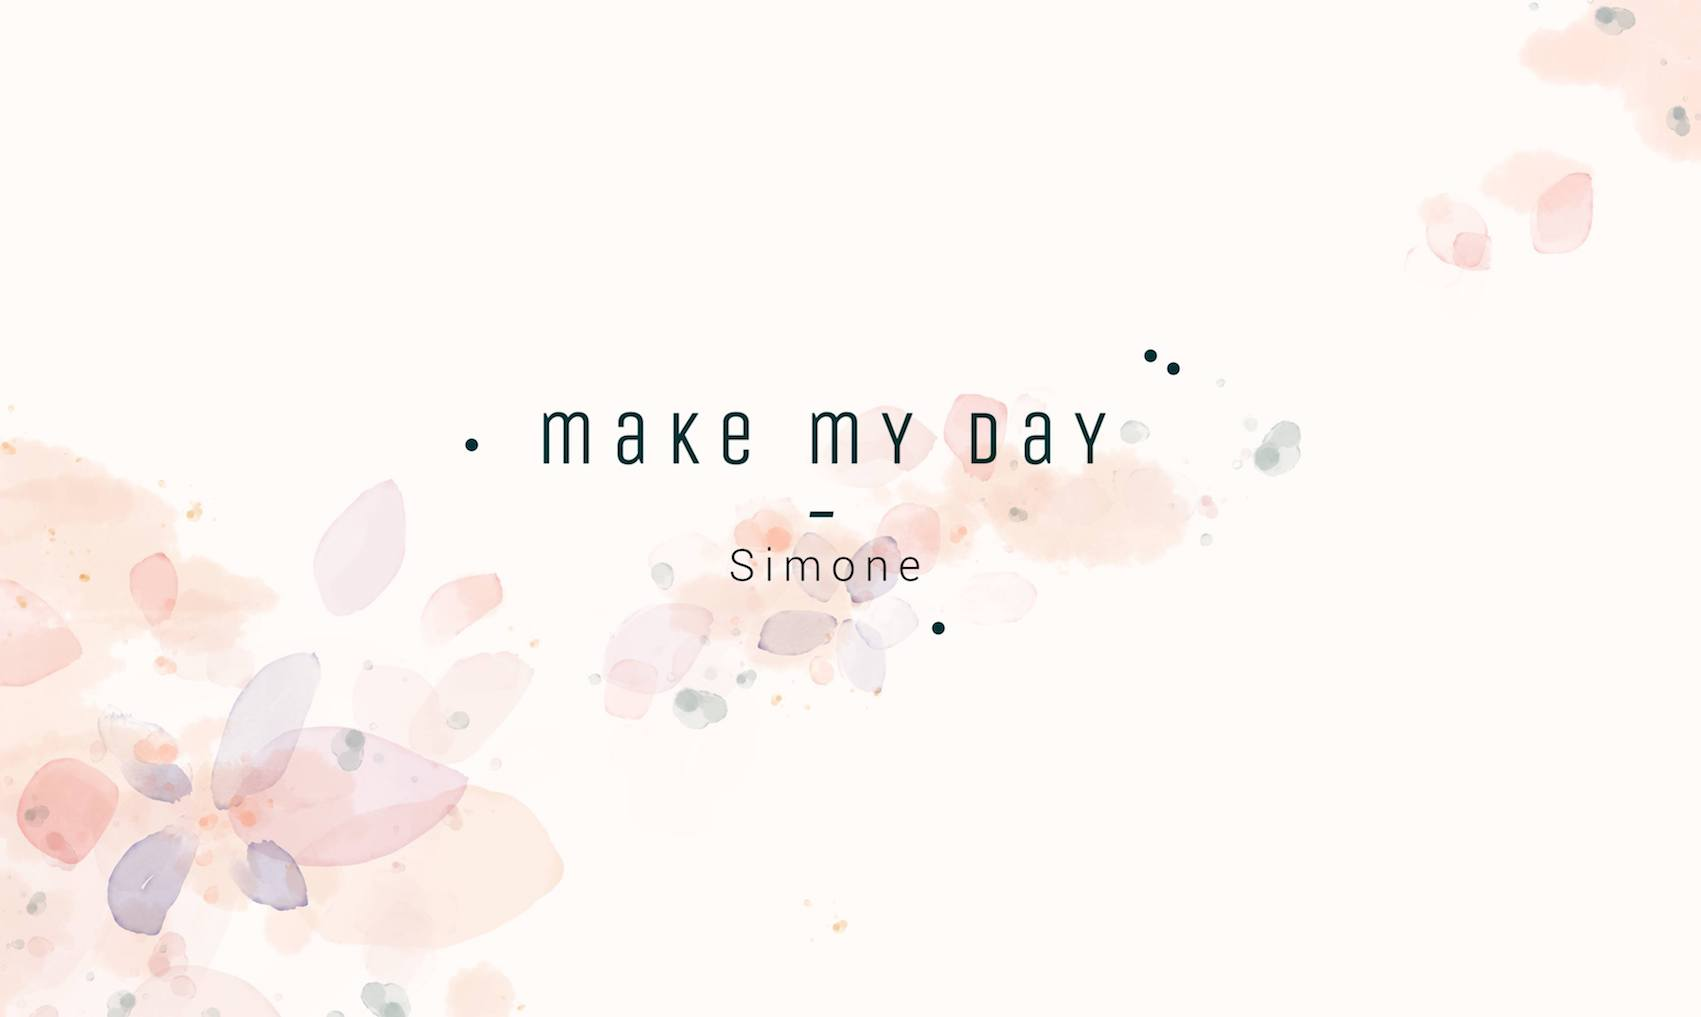 Make My Day by Simone